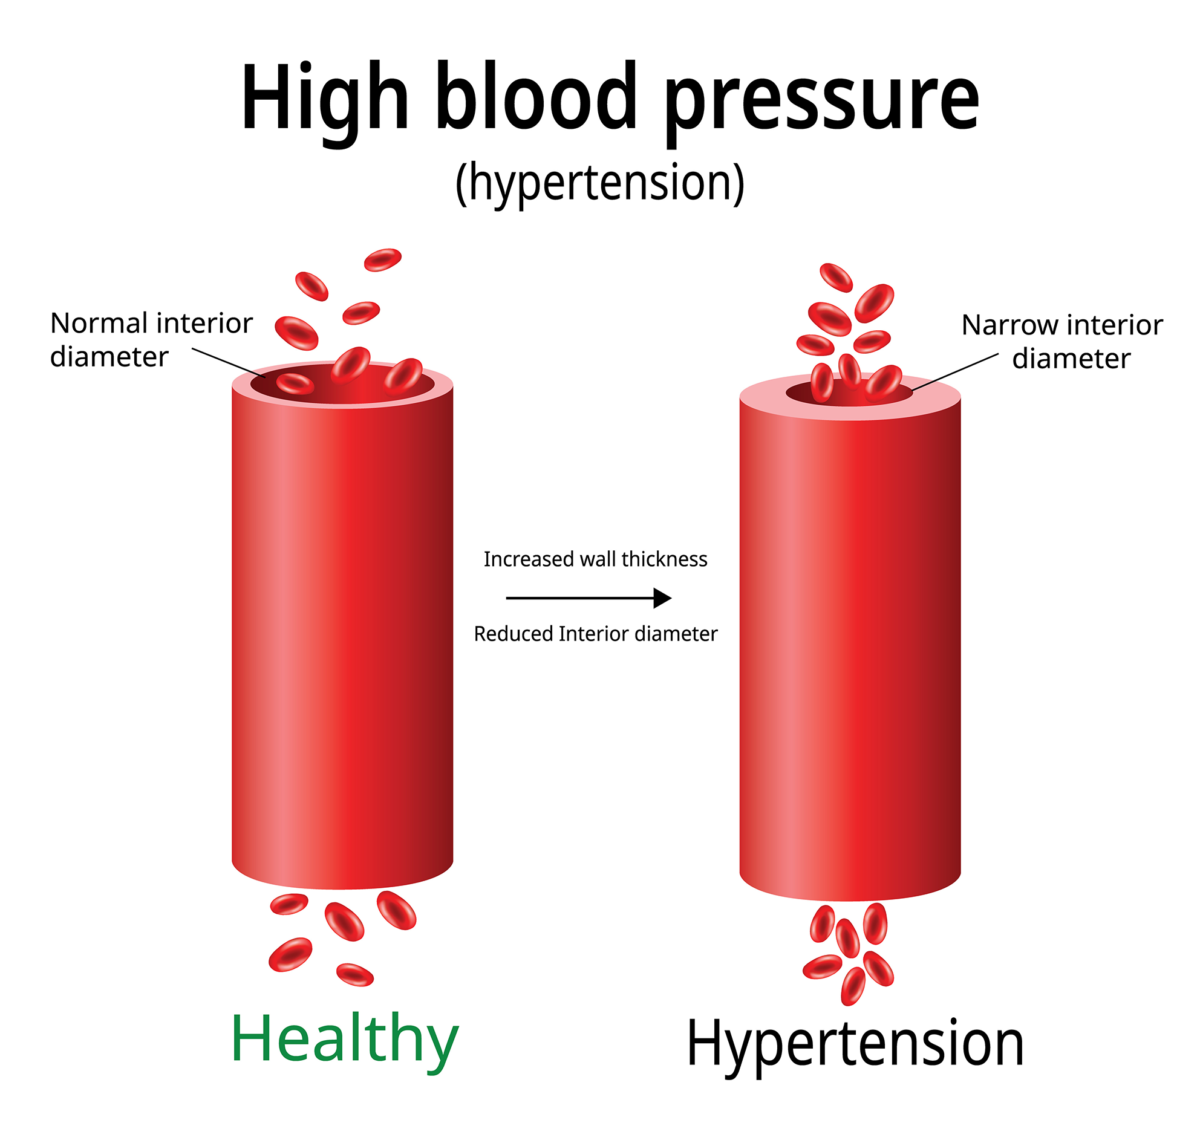 high blood pressure-hypertension